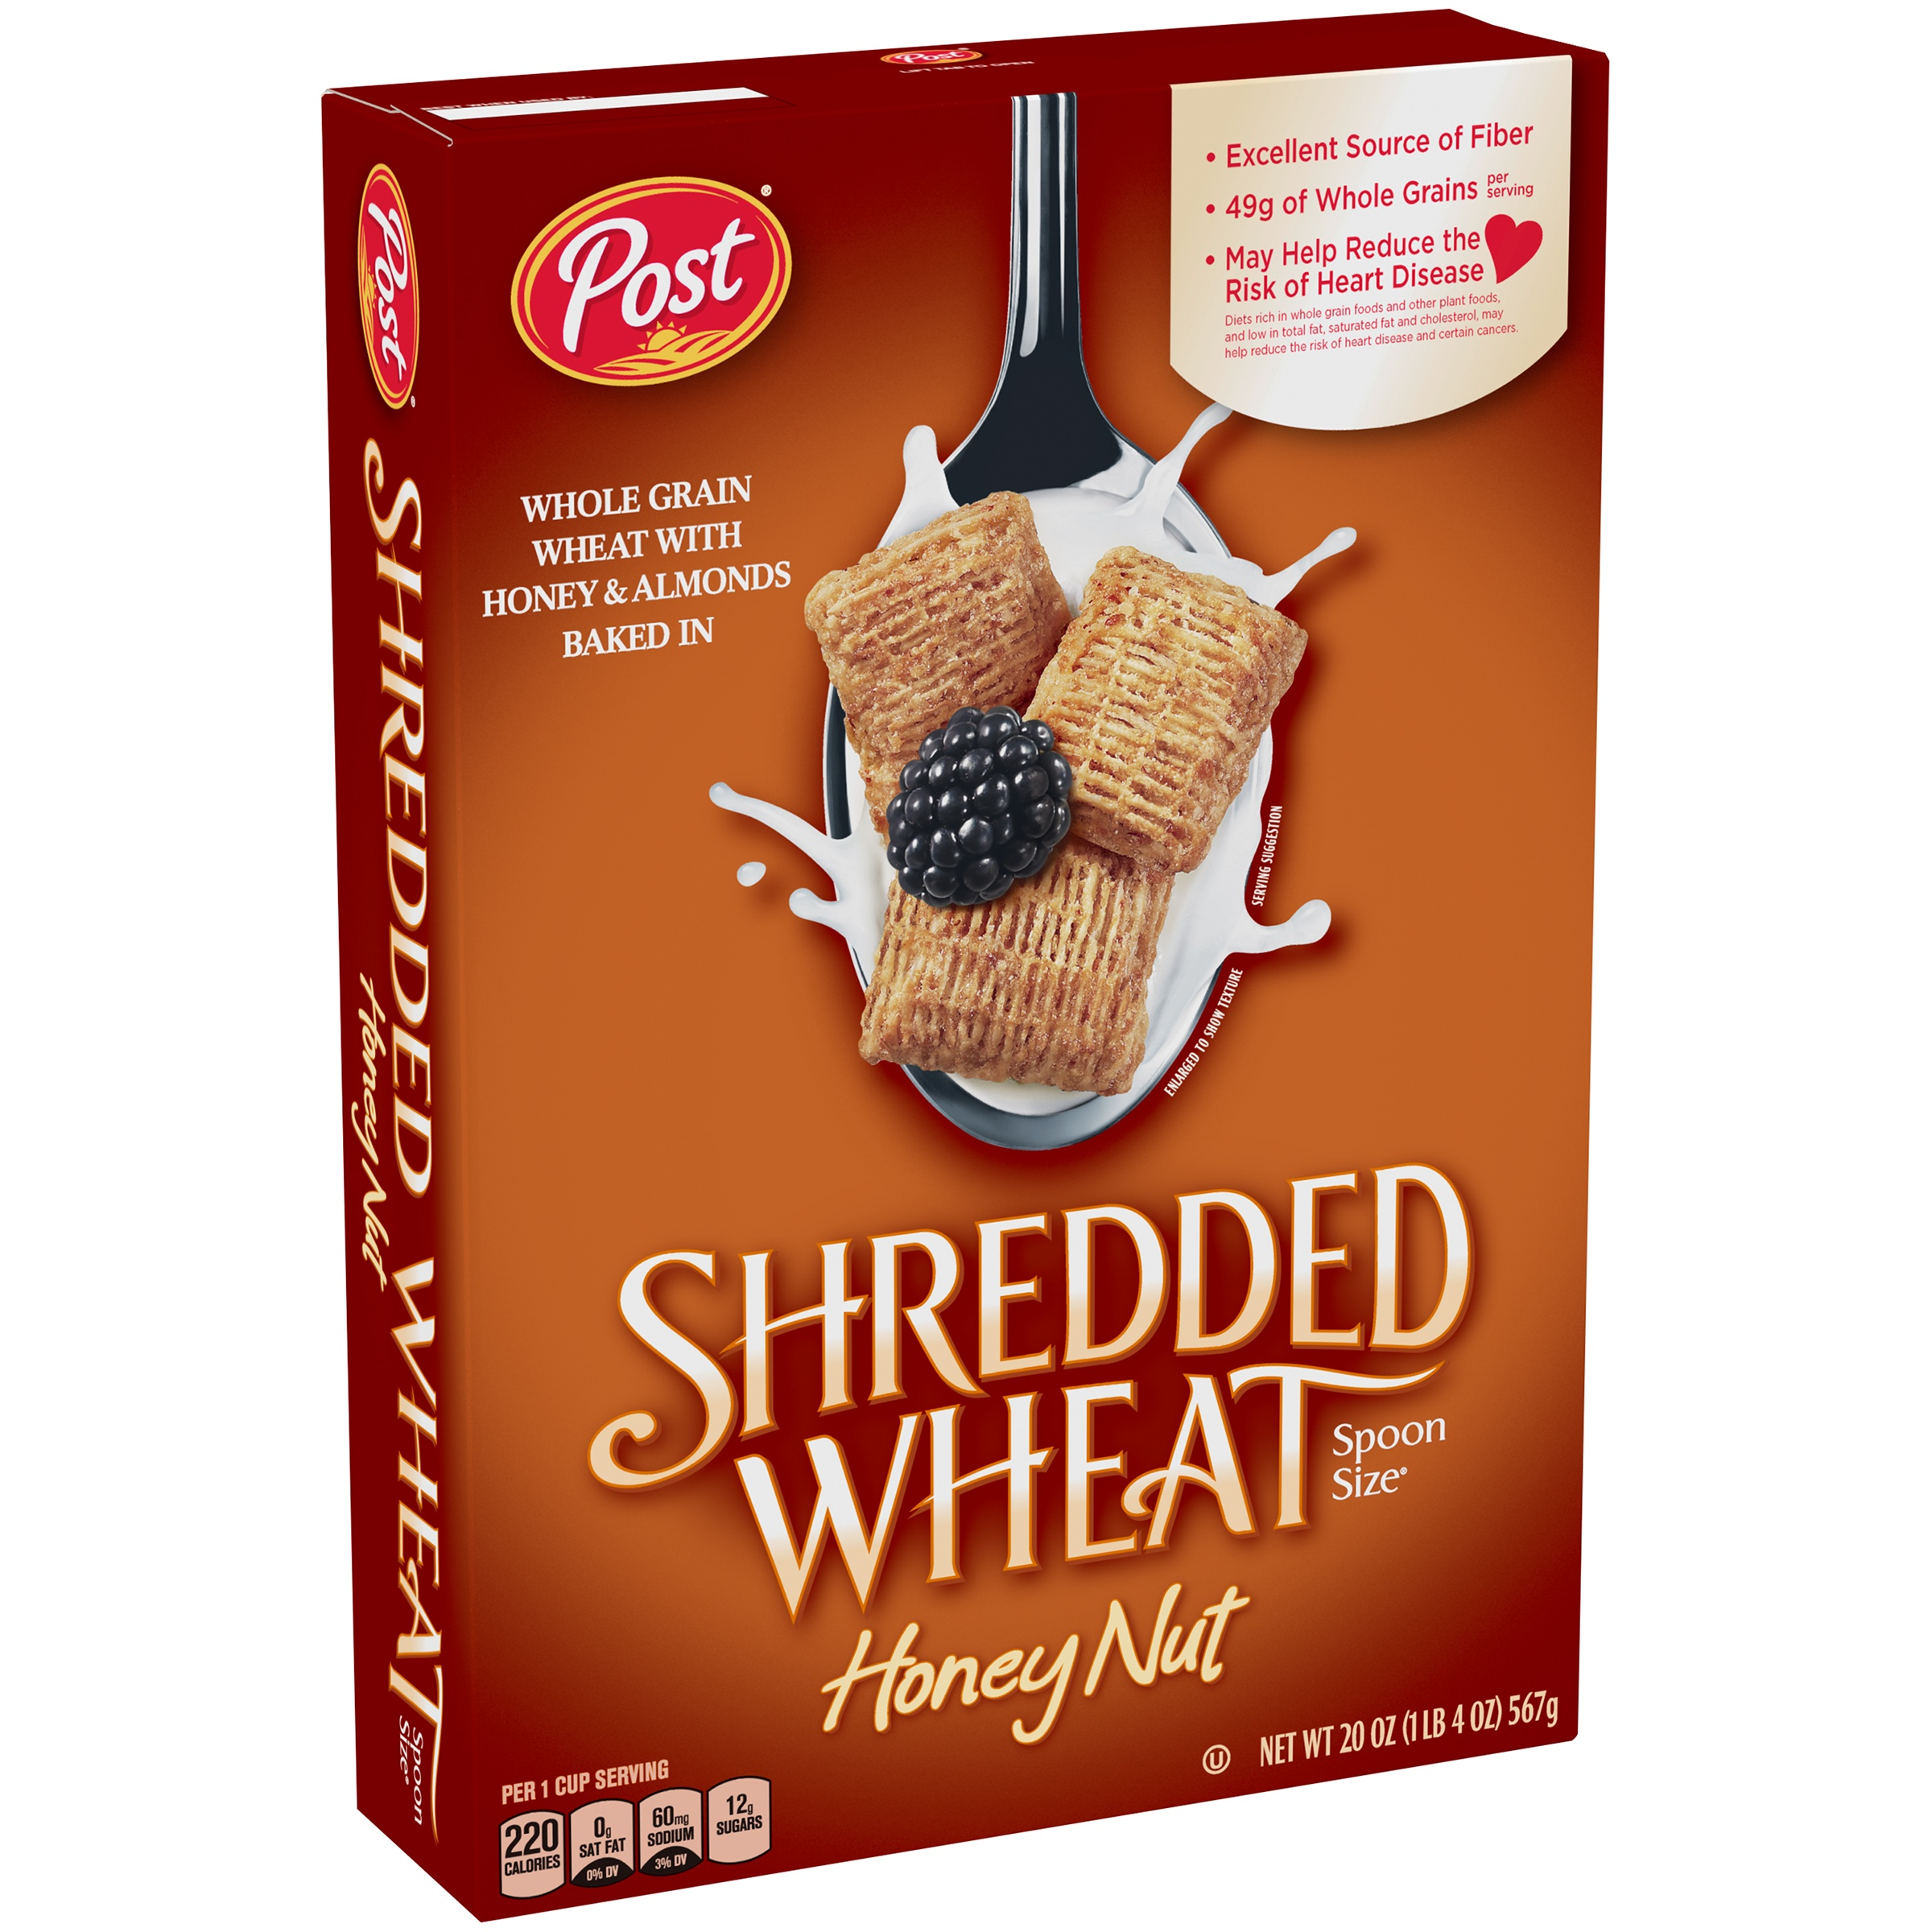 Post® Shredded Wheat Spoon Size® Honey Nut Cereal 20 oz. Box